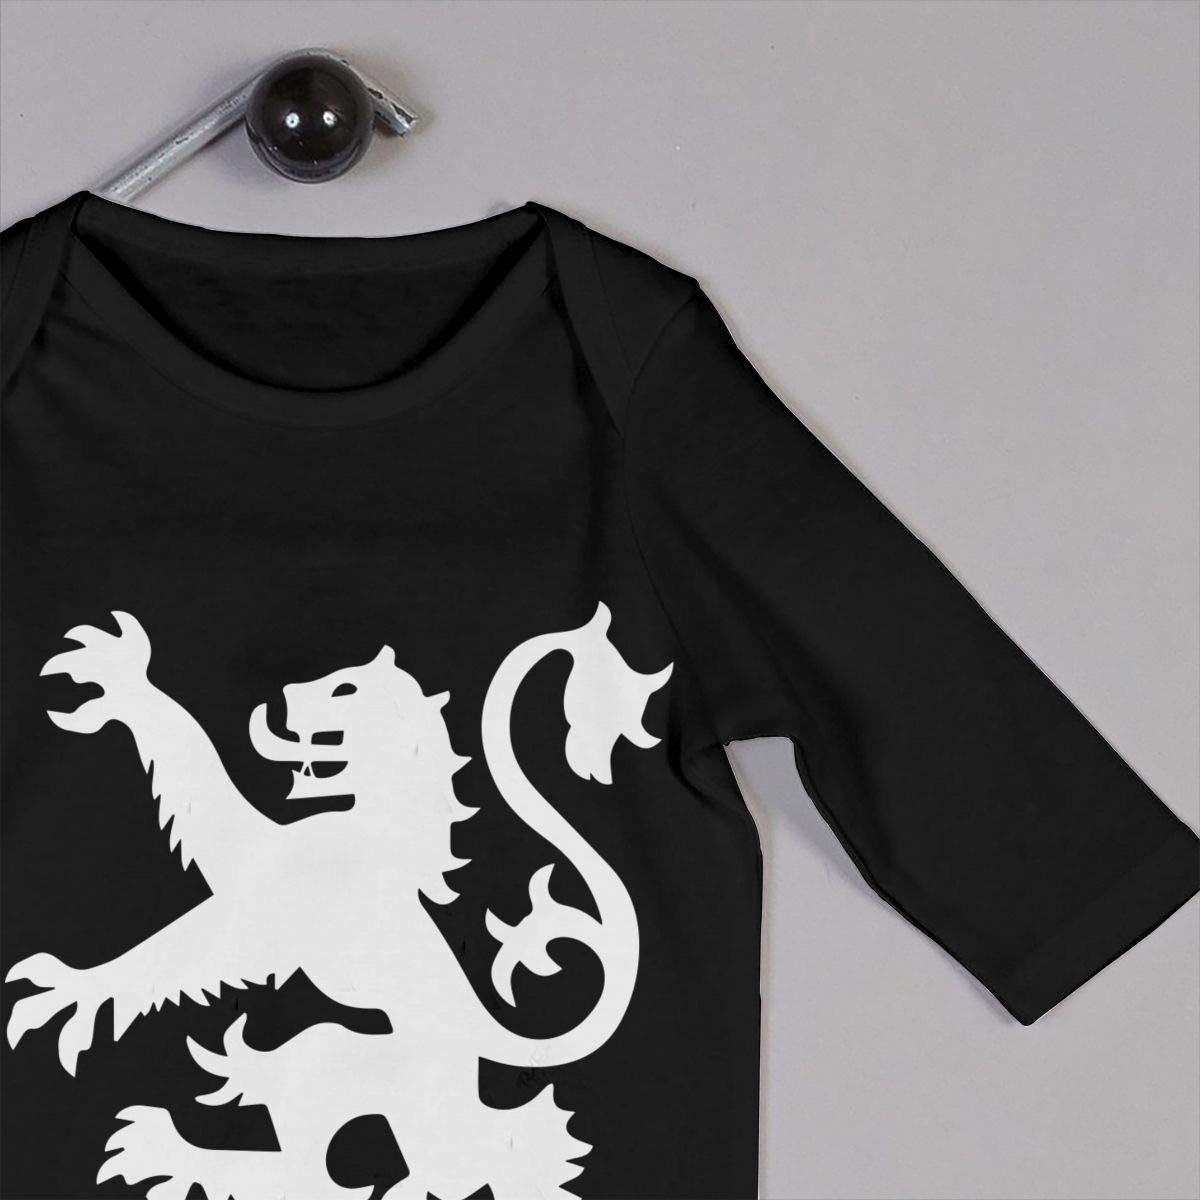 A1BY-5US Baby Infant Toddler Cotton Long Sleeve Lion Rampant Scotland Scottish Climb Romper One-Piece Romper Clothes